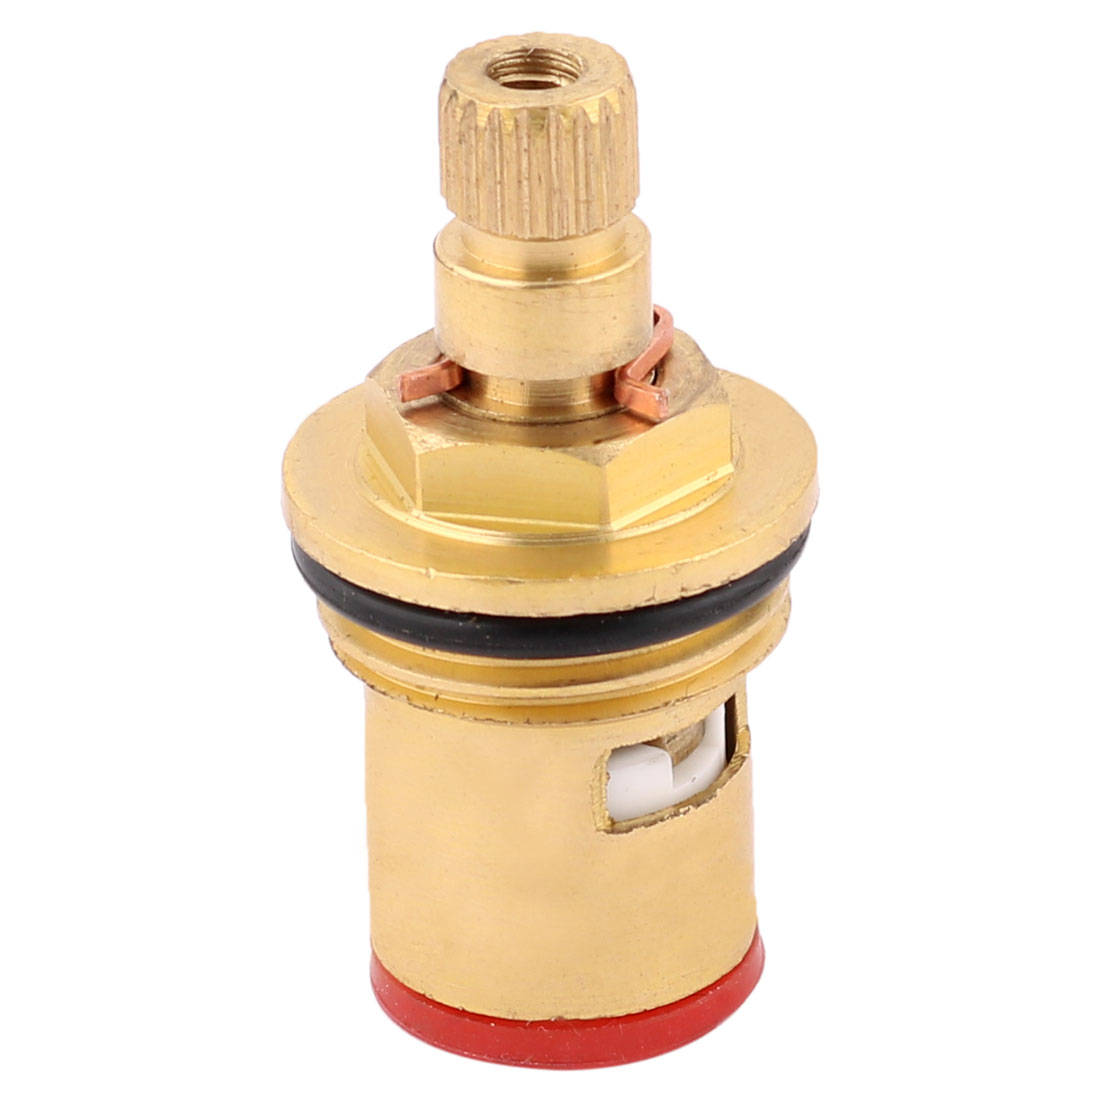 Bathroom Brass Fitting Valve Nozzle Replacement Tap Thread Faucet Cartridge